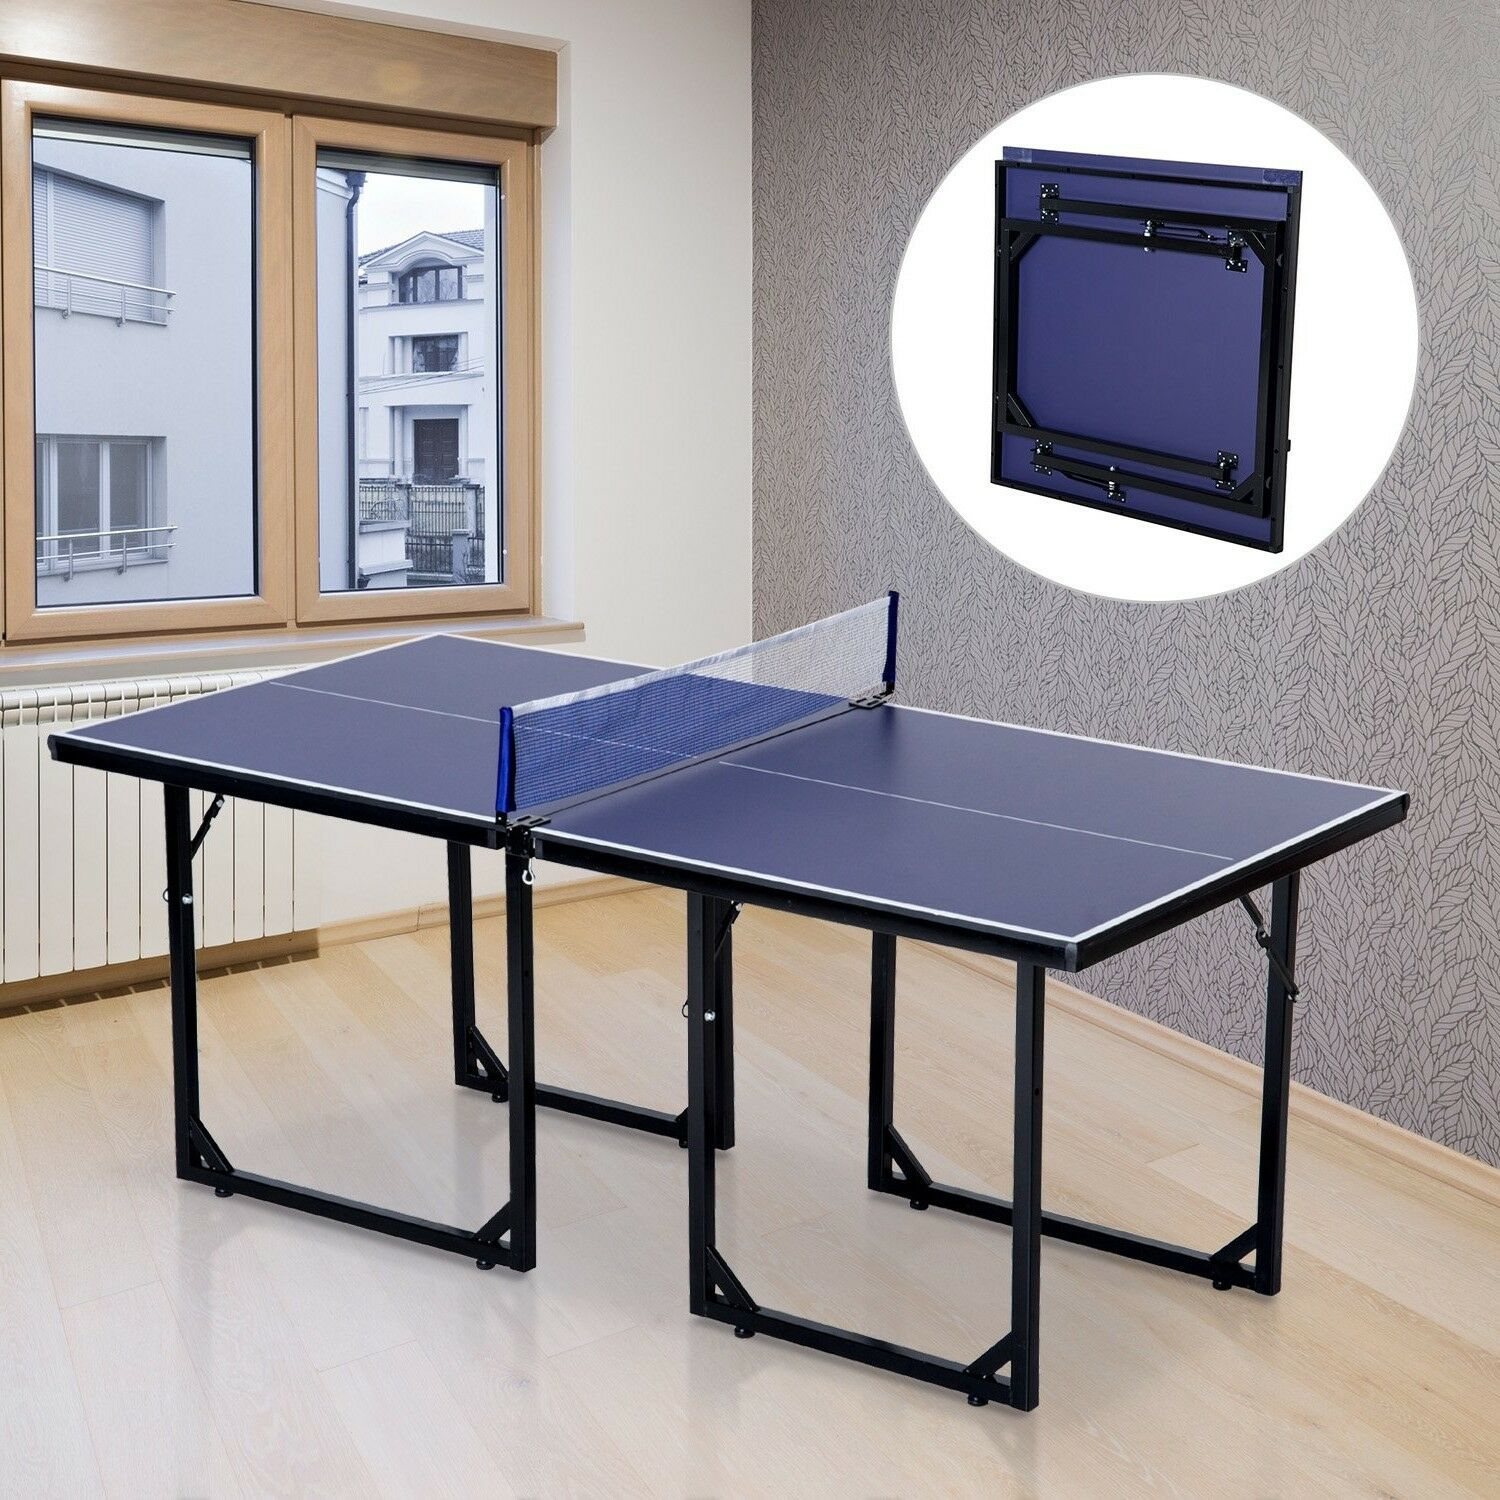 Small Ping Pong Table Folding Portable Tennis Table Outdoor Play Room  Indoor New 1 Of 10FREE Shipping ...